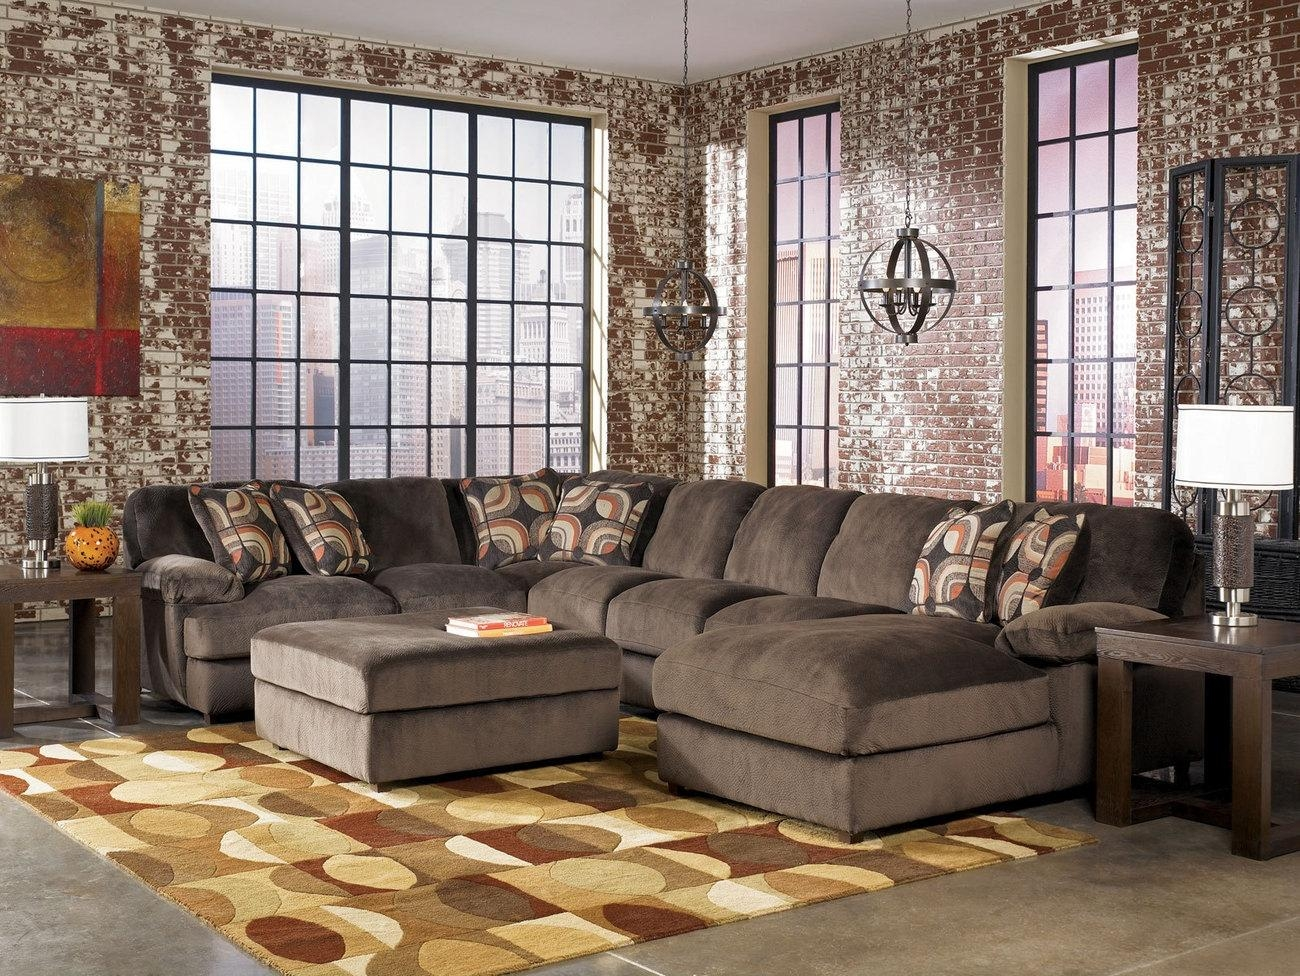 Sofas Center : Popular Oversized Sectionals Sofas About Remodel Throughout Sectional With Oversized Ottoman (Image 17 of 20)